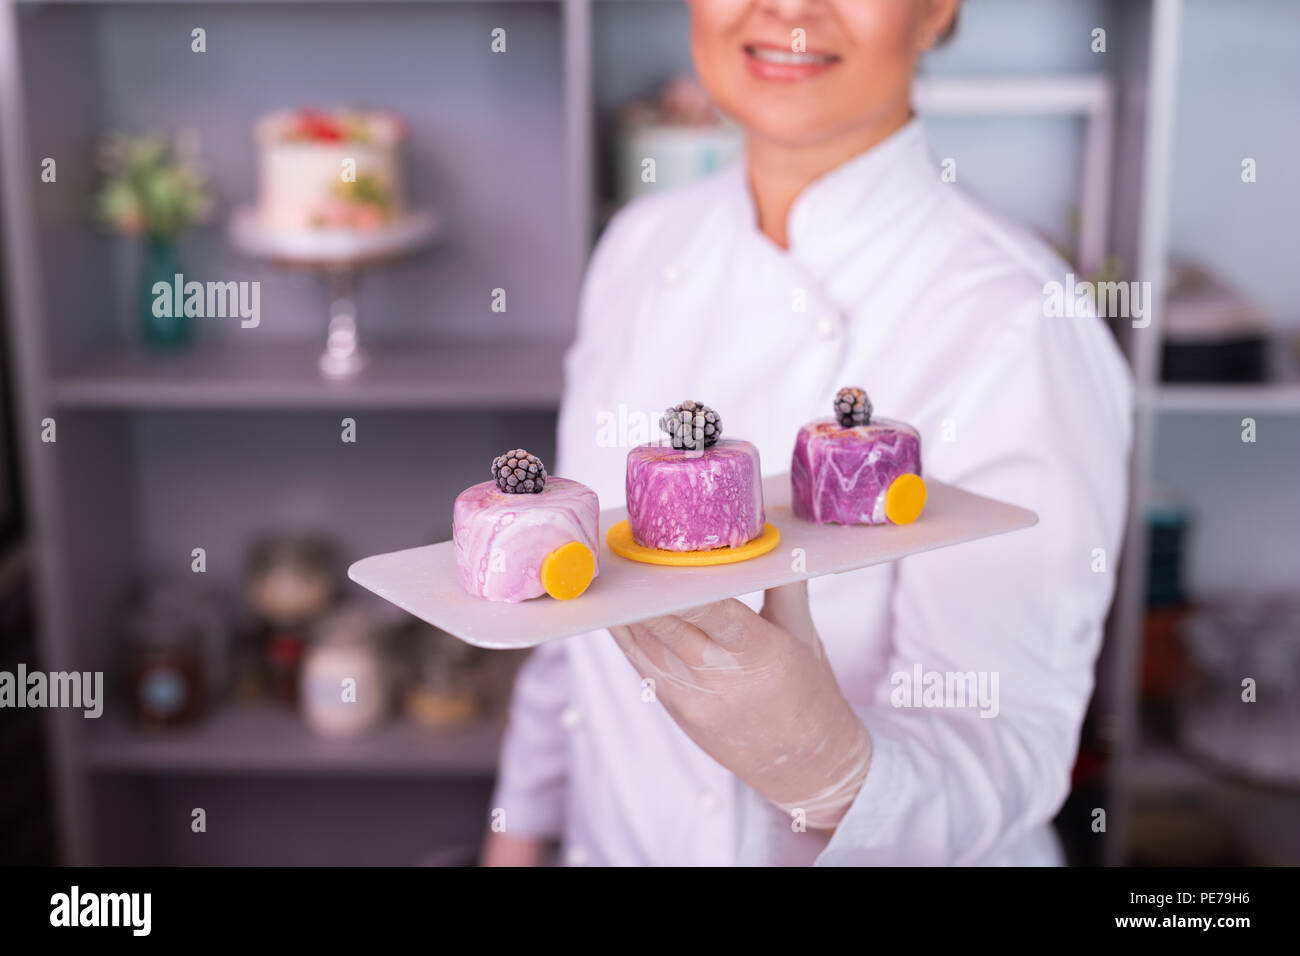 Beaming blonde-haired baker showing the result of her work - Stock Image